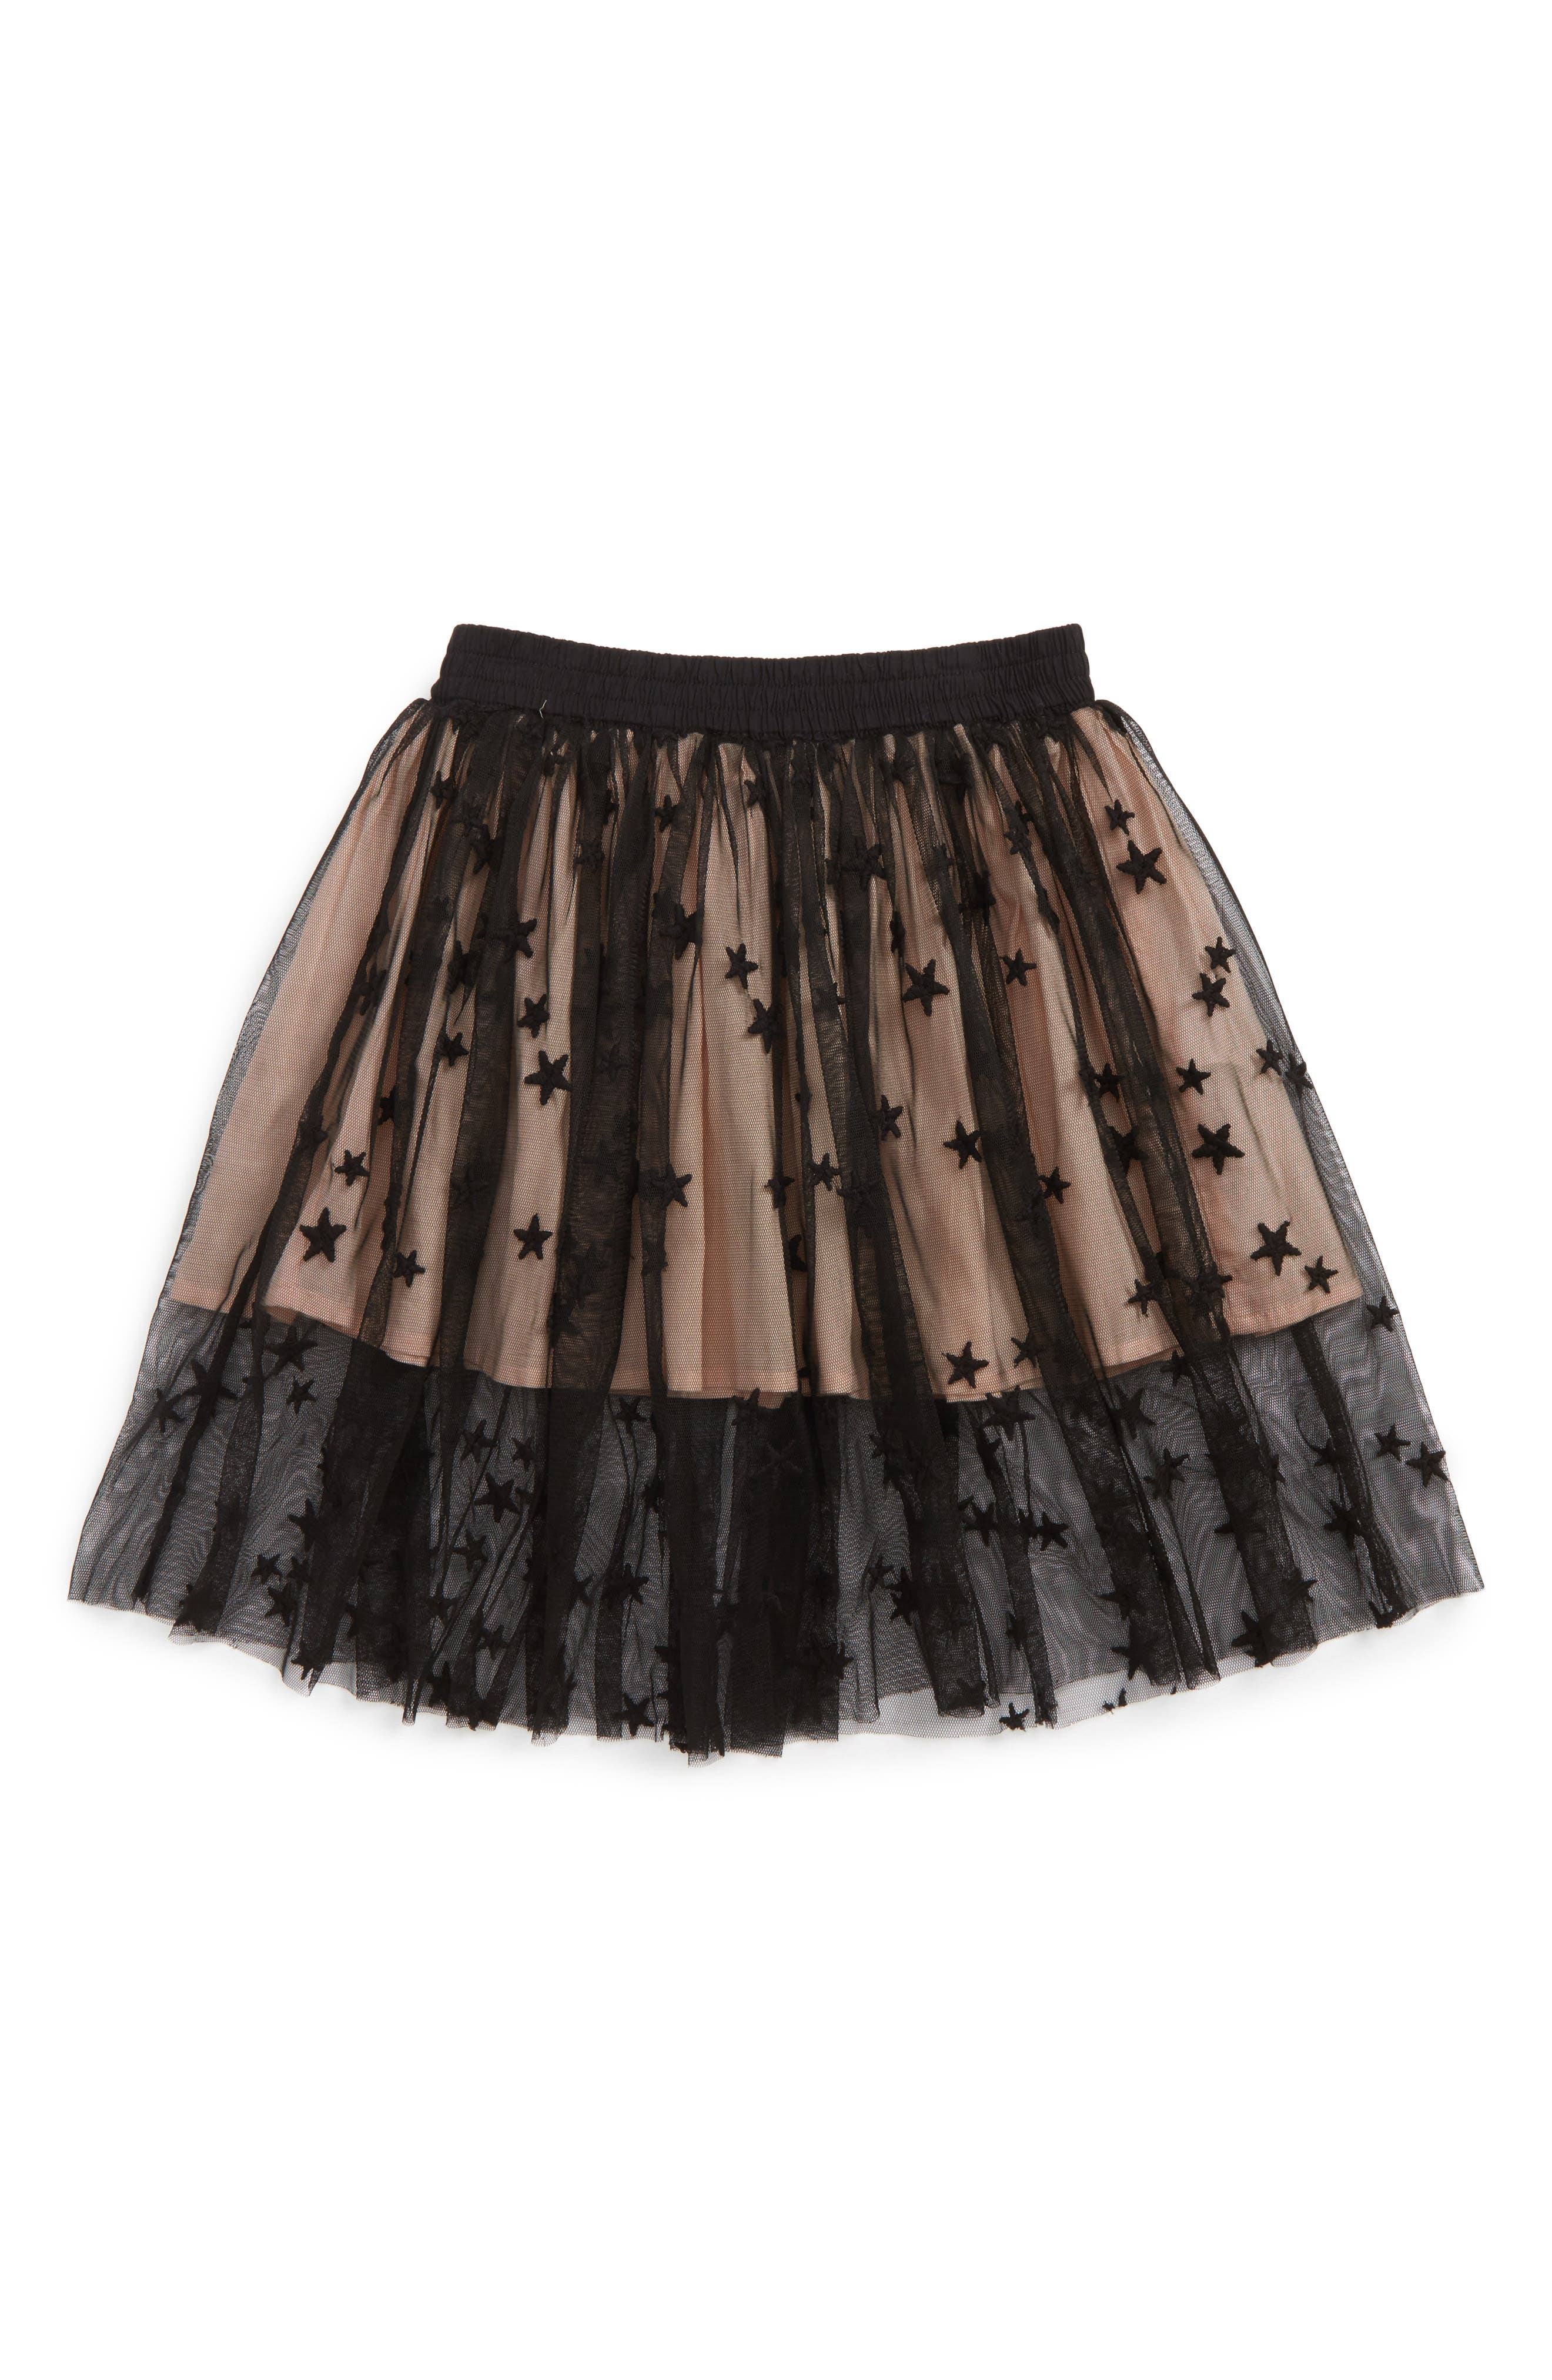 Alternate Image 1 Selected - Stella McCartney Kids Amalie Star Tulle Skirt (Toddler Girls, Little Girls & Big Girls)